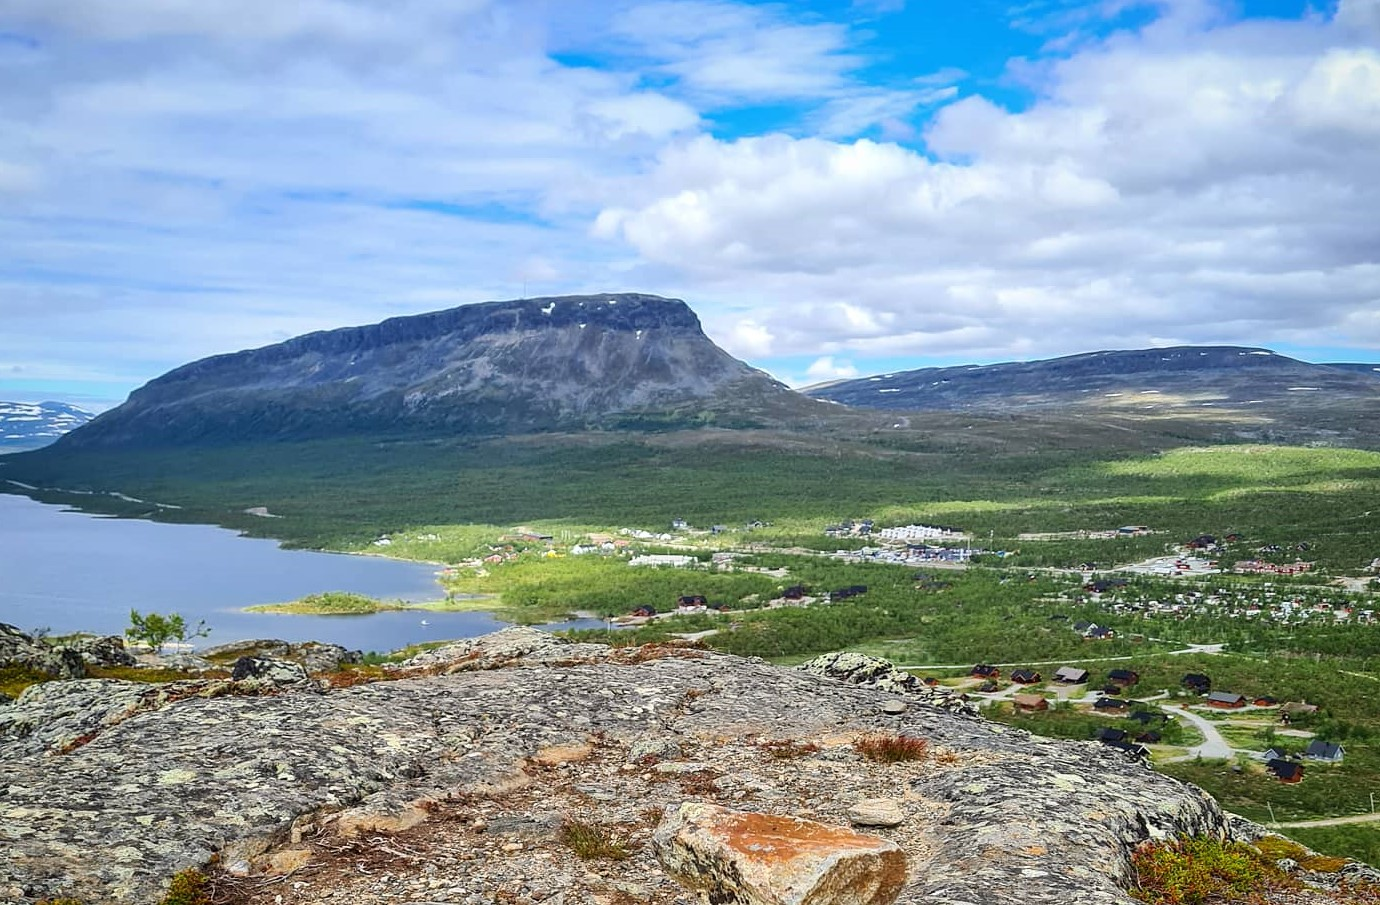 Summer View from Salmivaara Kilpisjärvi- lapland Finland - Blog by Maiju Wallenius